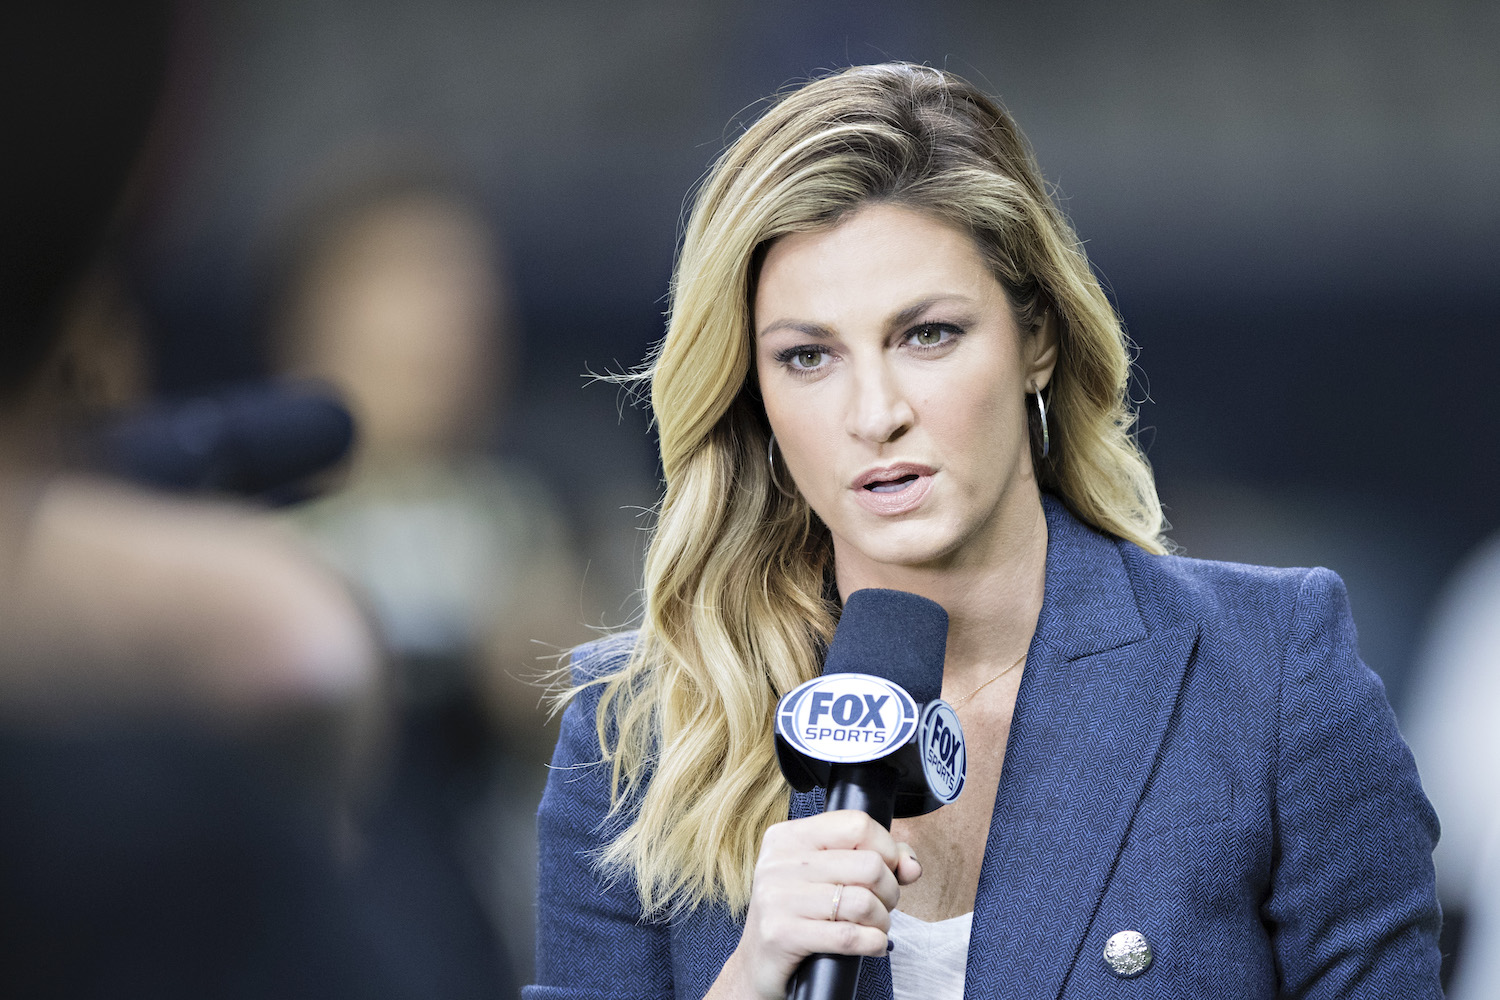 Erin Andrews of Fox Sports